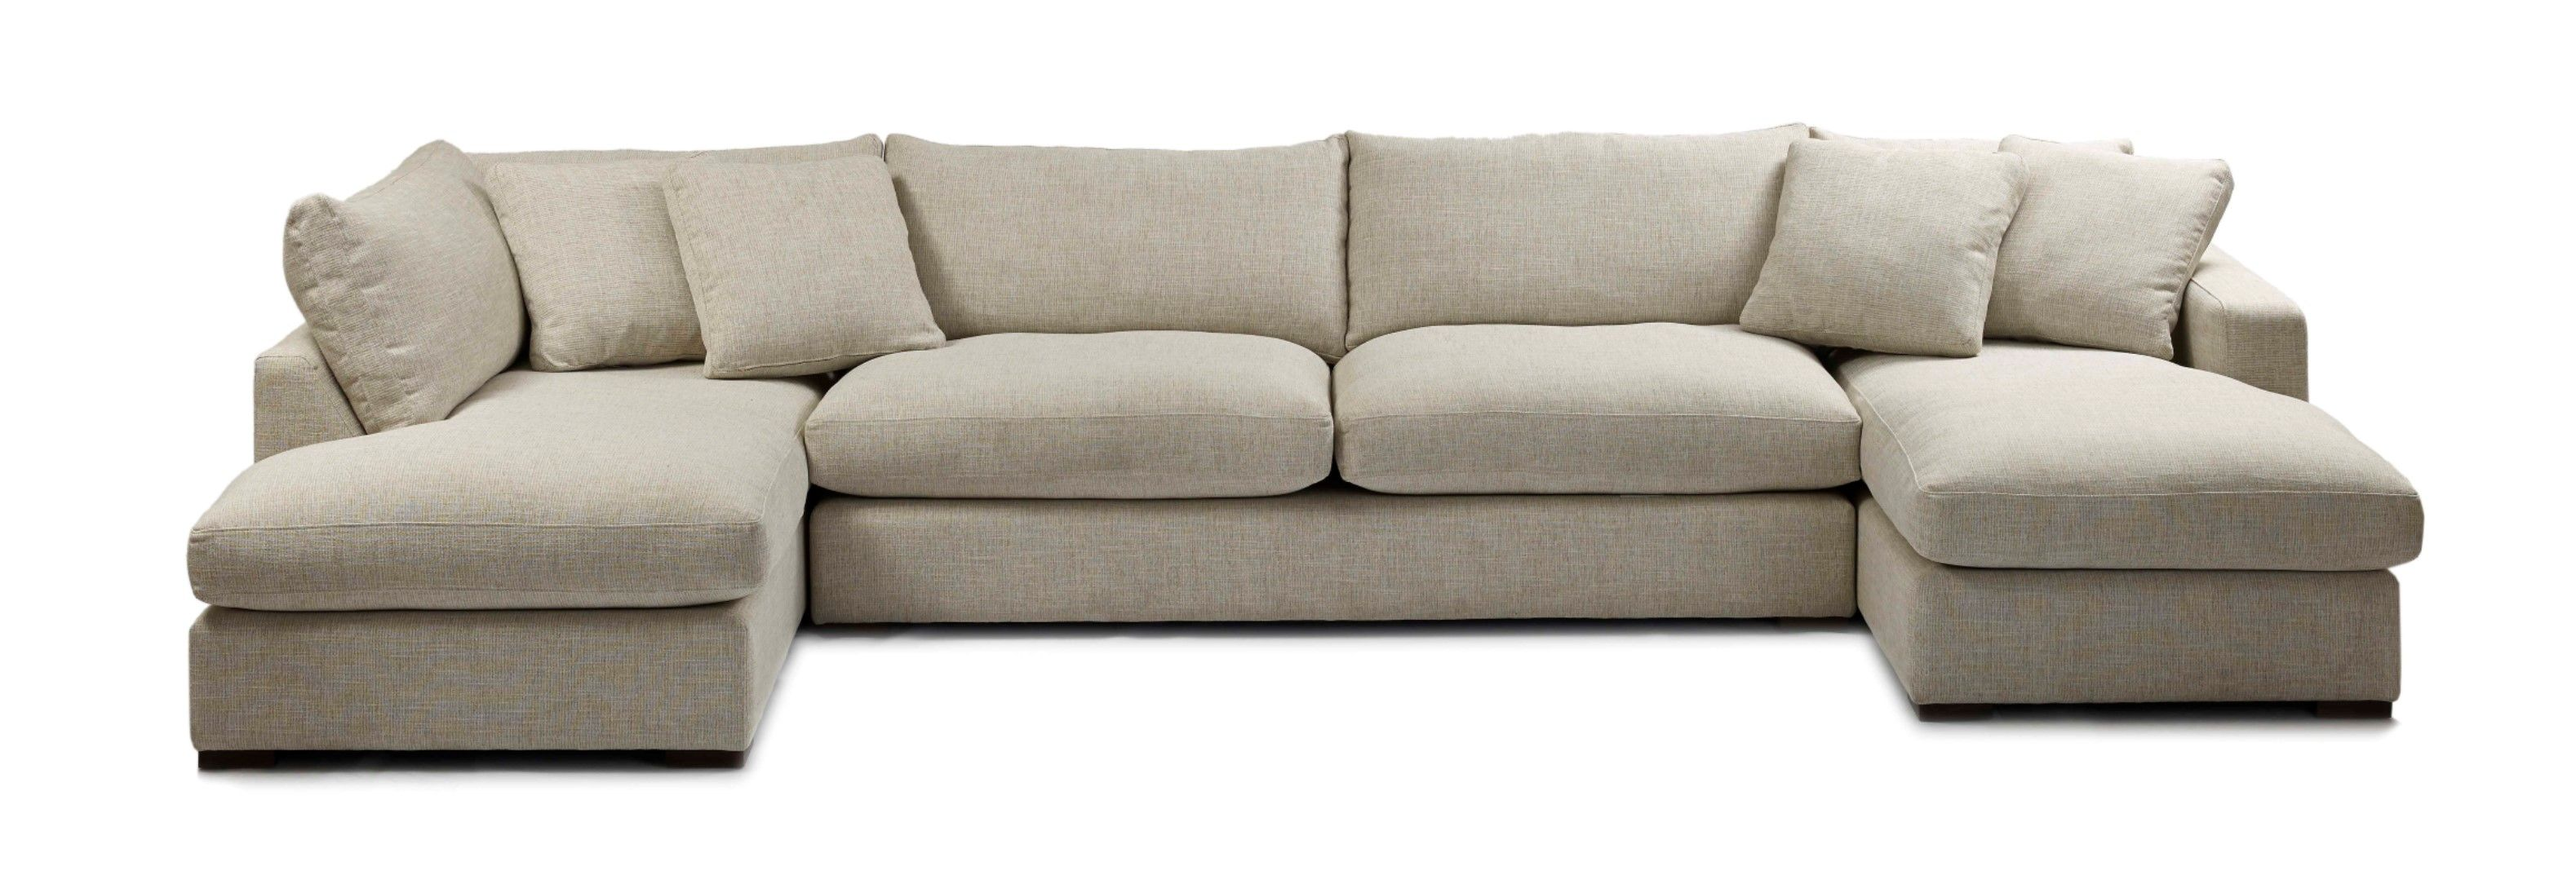 Quality Australian designed and manufactured sofas sofa beds